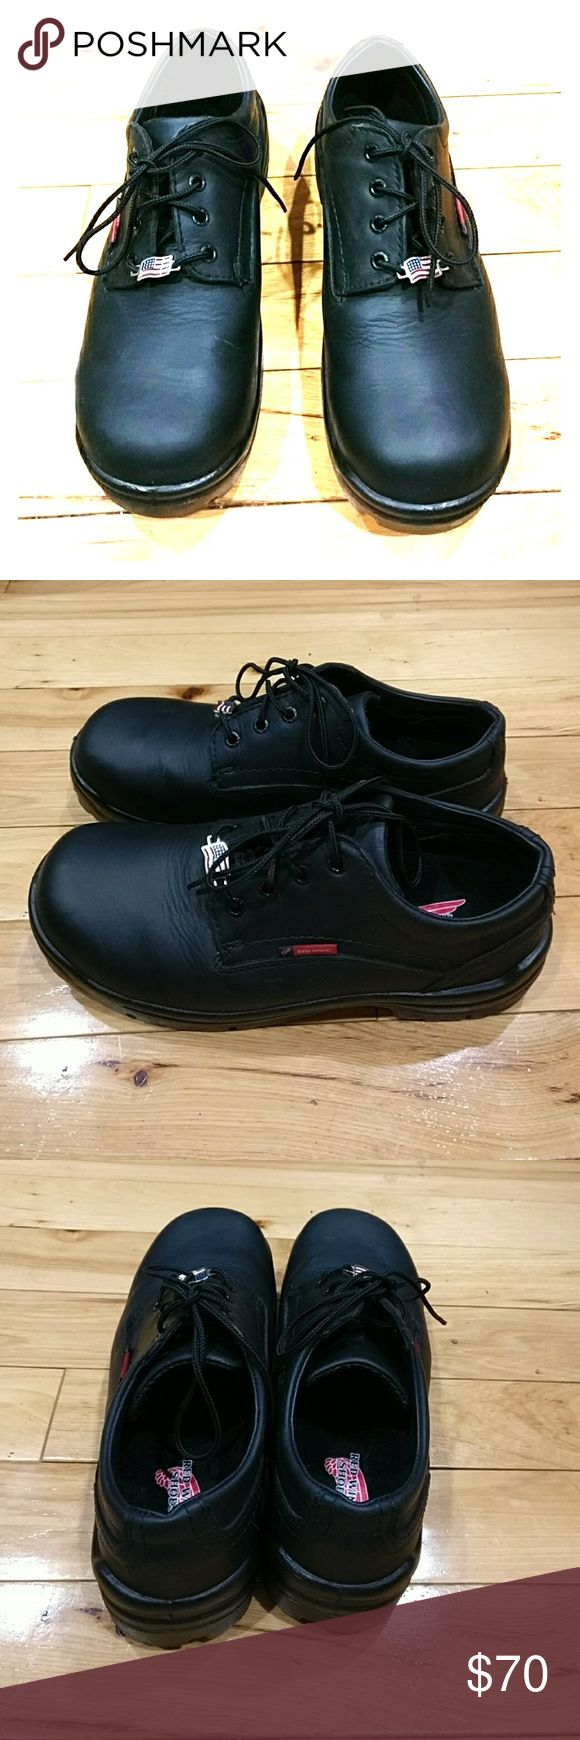 Red Wing men's shoes black 9.5 D Red Wing black men's shoes size 9.5 d Hair Art near new condition. I'm selling them at a great price so get them today yeah! Red Wing Shoes Shoes Oxfords & Derbys